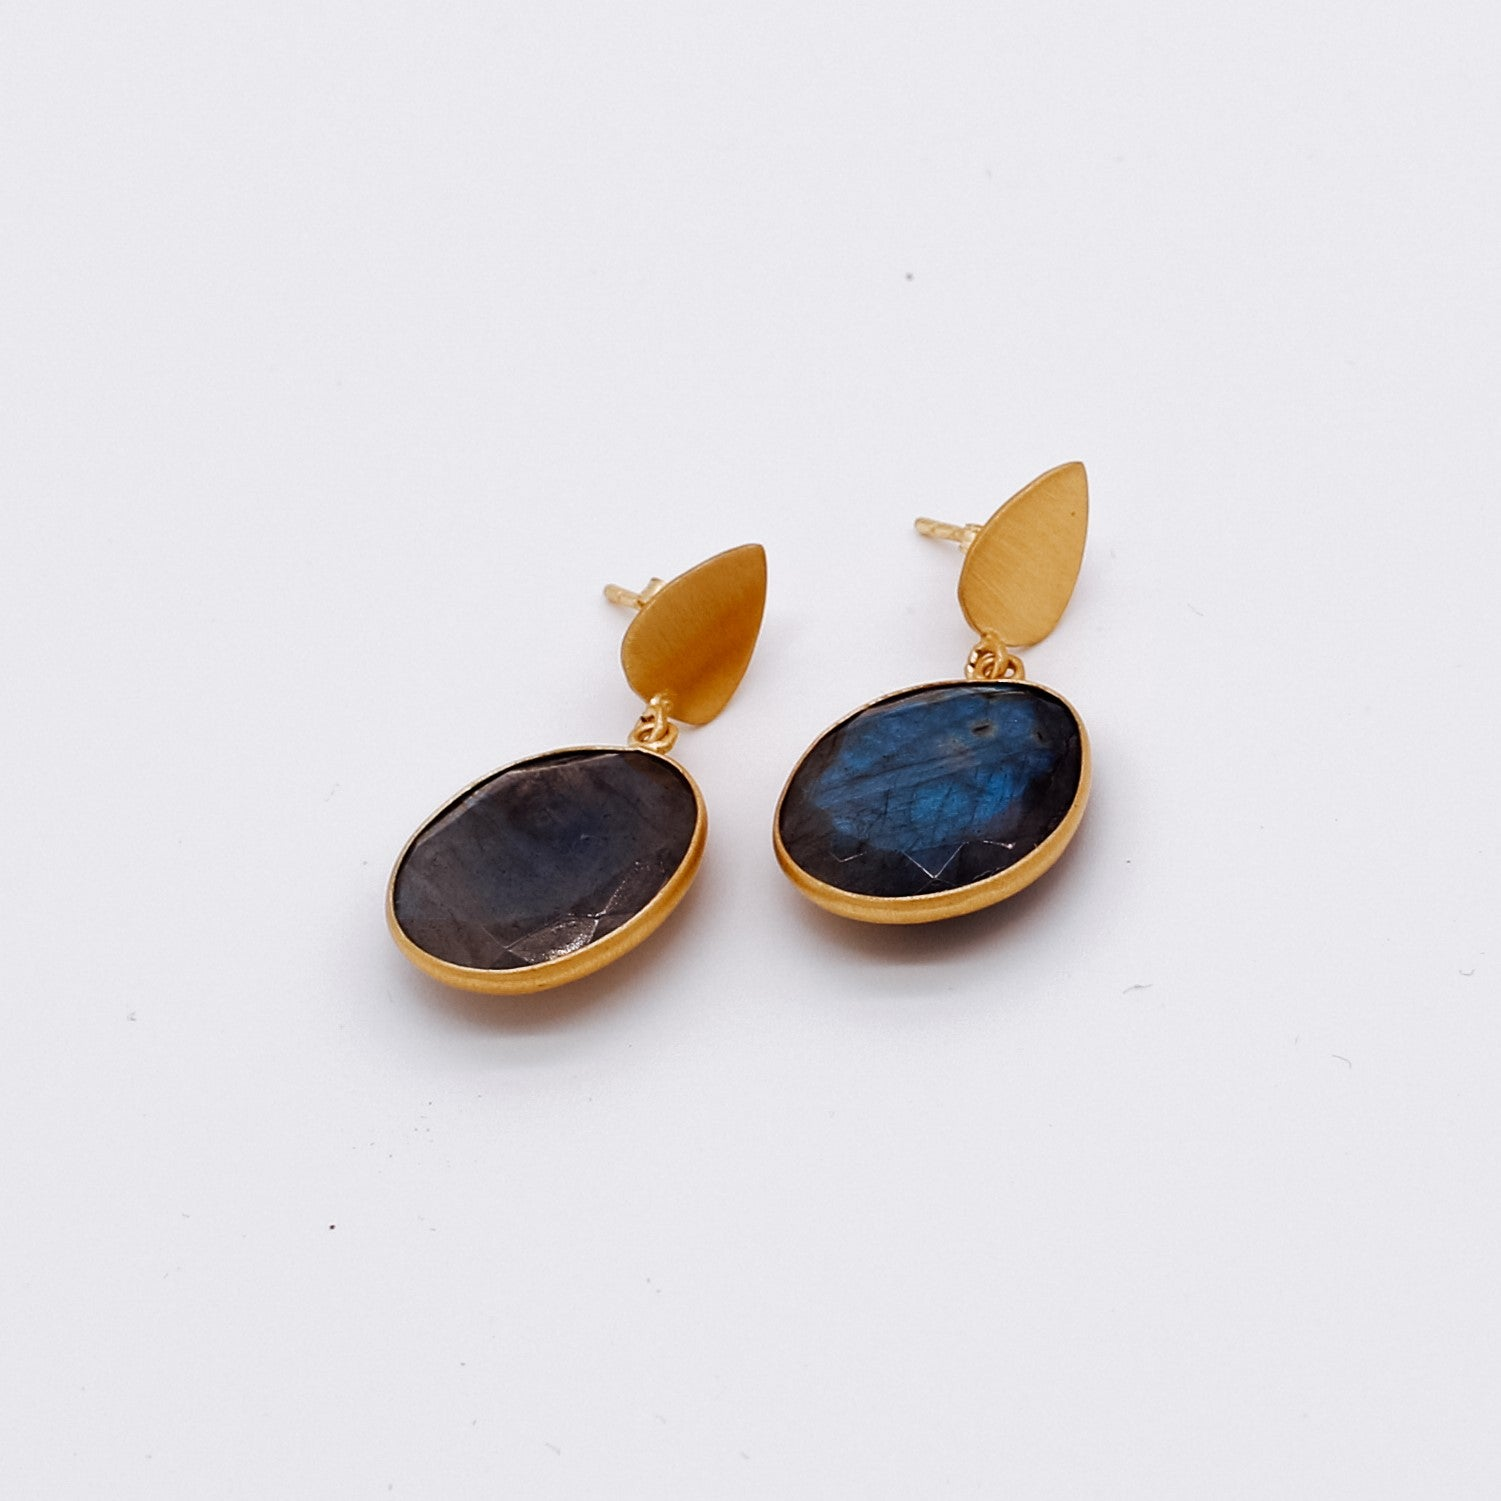 Amber Earrings - Luxurious London Topaz Quartz handmade gold plated Katy Valentine - Shop with Sparkle & The Sinner